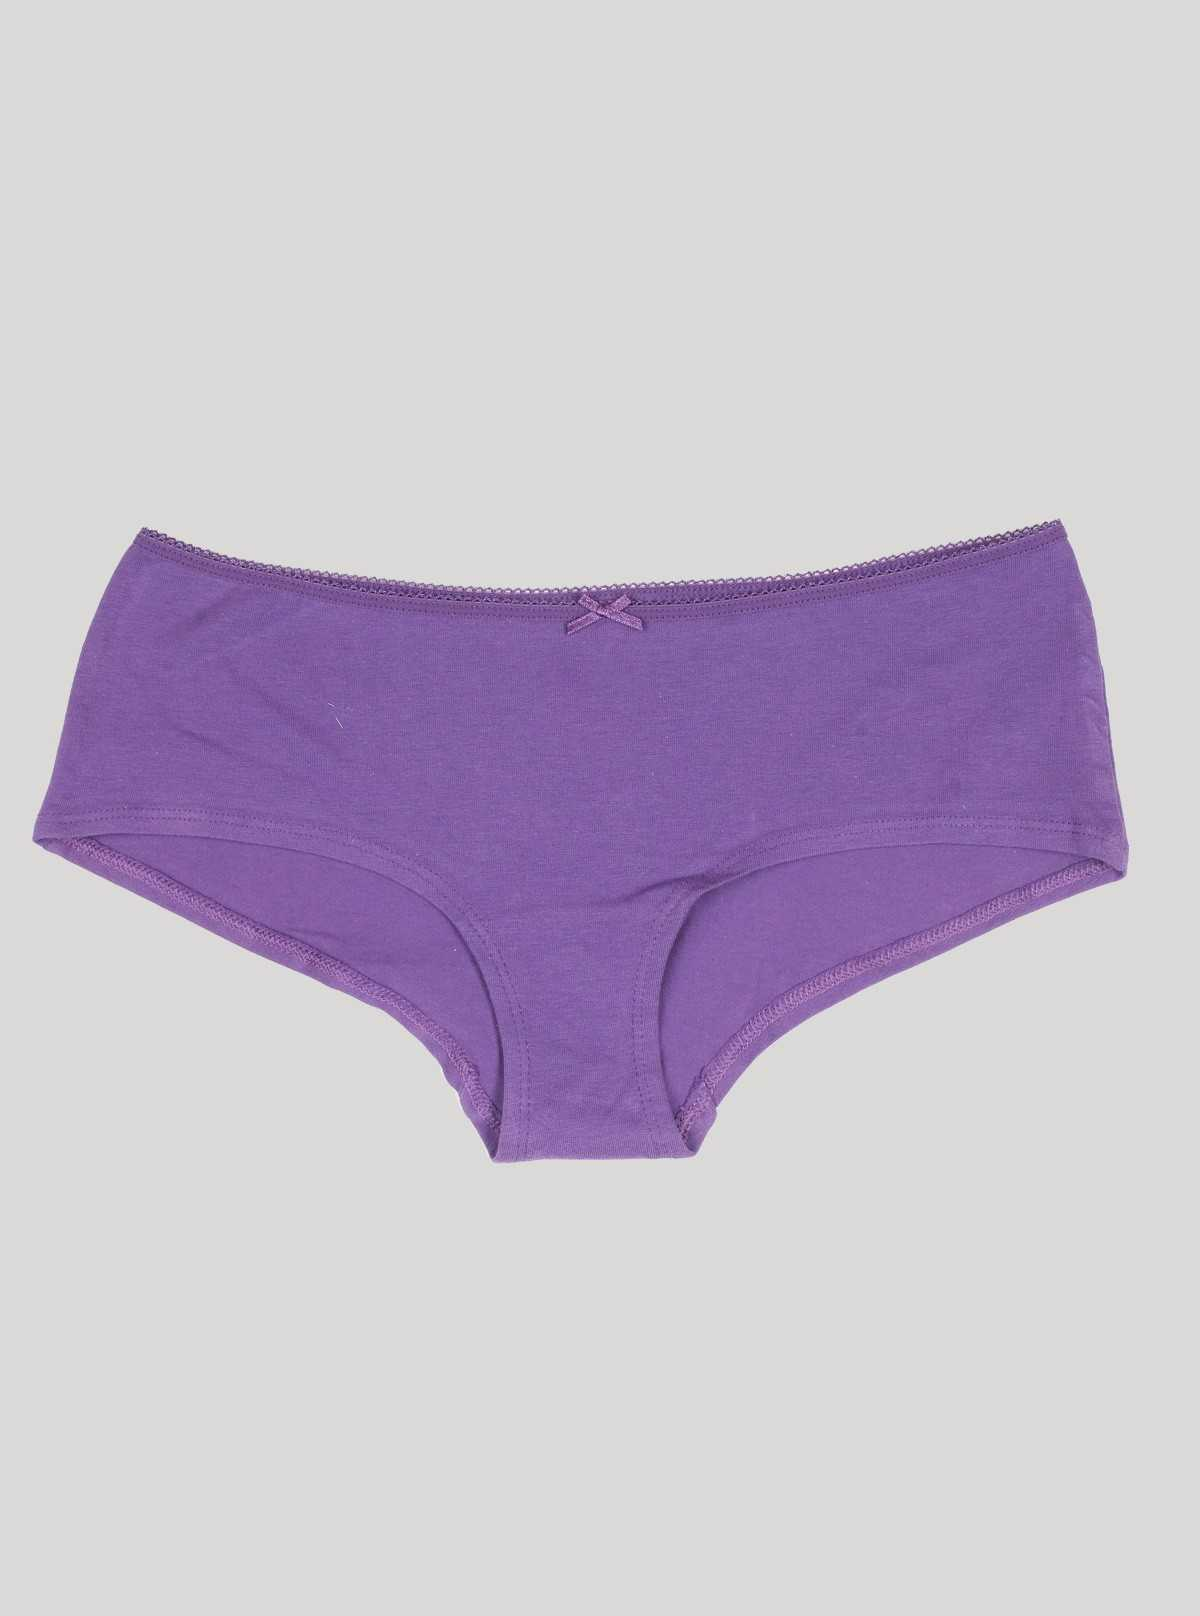 Purple Panty Boer and Fitch - 1